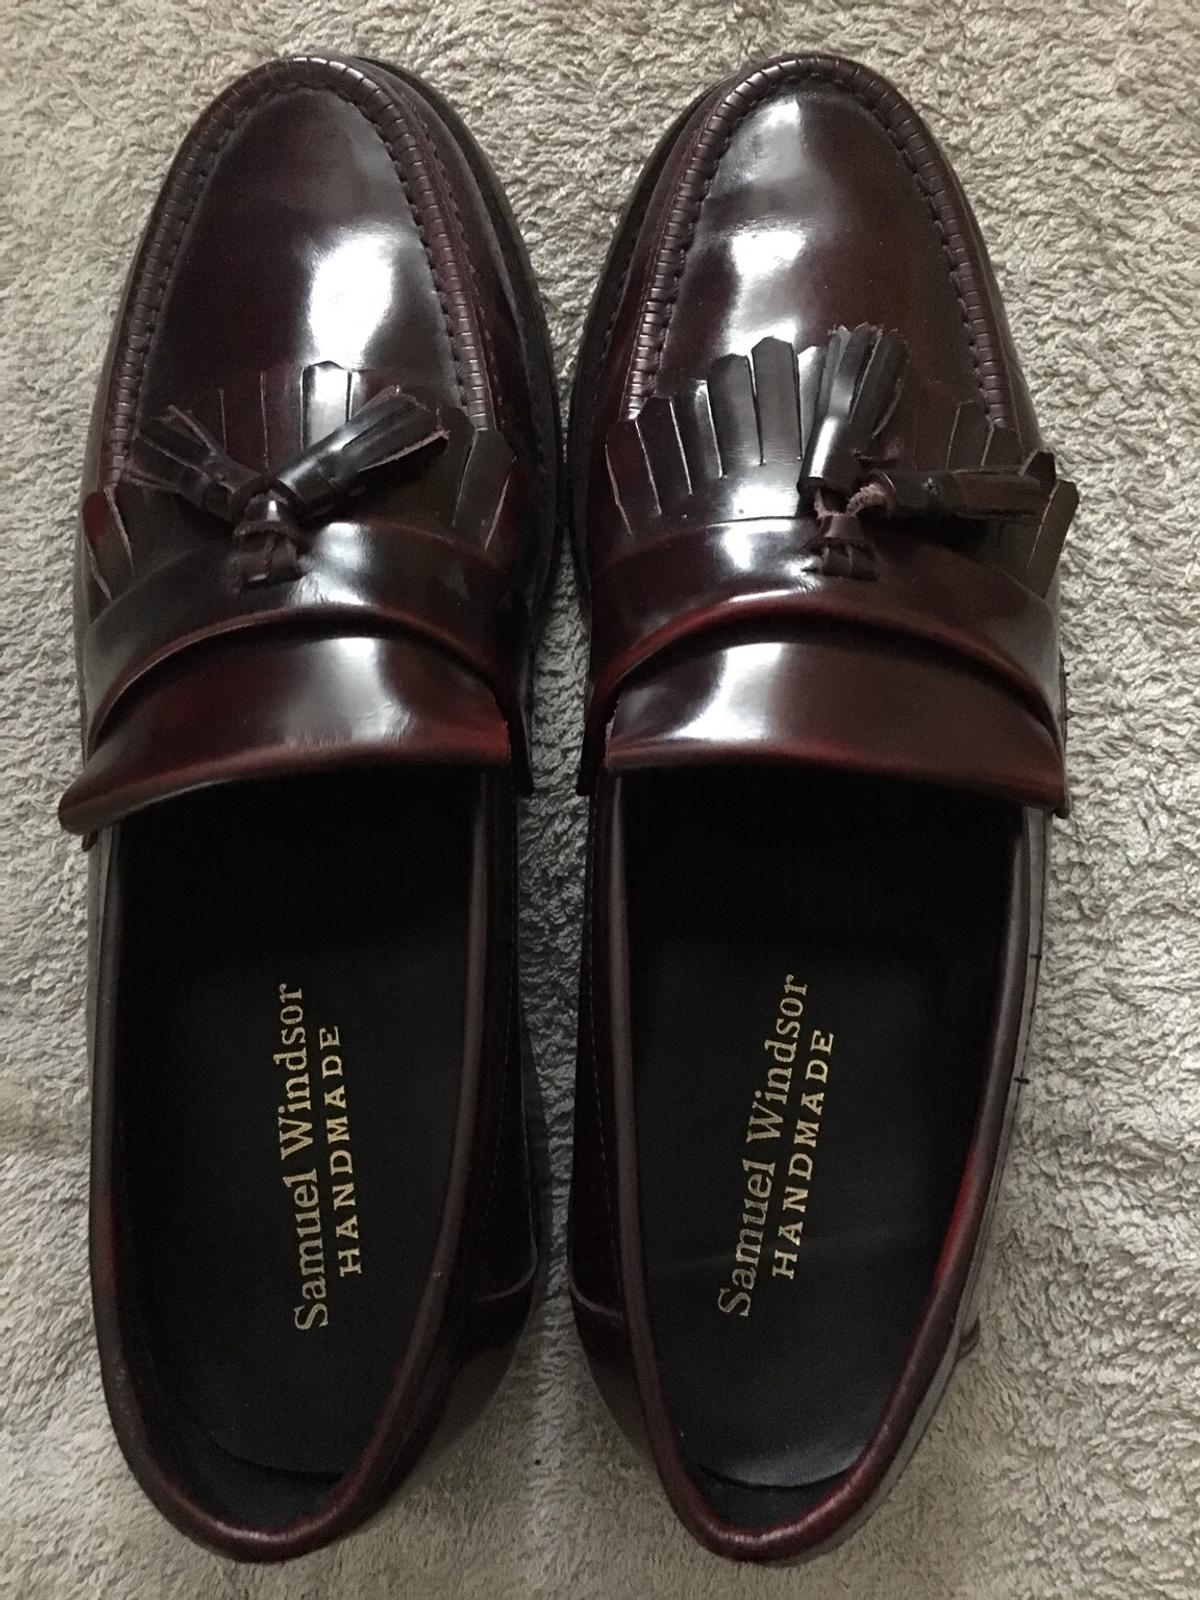 Burgundy/ ox-bloody colour mod loafer shoes.. warm 3-4 times in excellent cindition. Leather upper and sole, made again by Samuel Windsor. Size 7 1/2( I'm an 8 and can wear them)